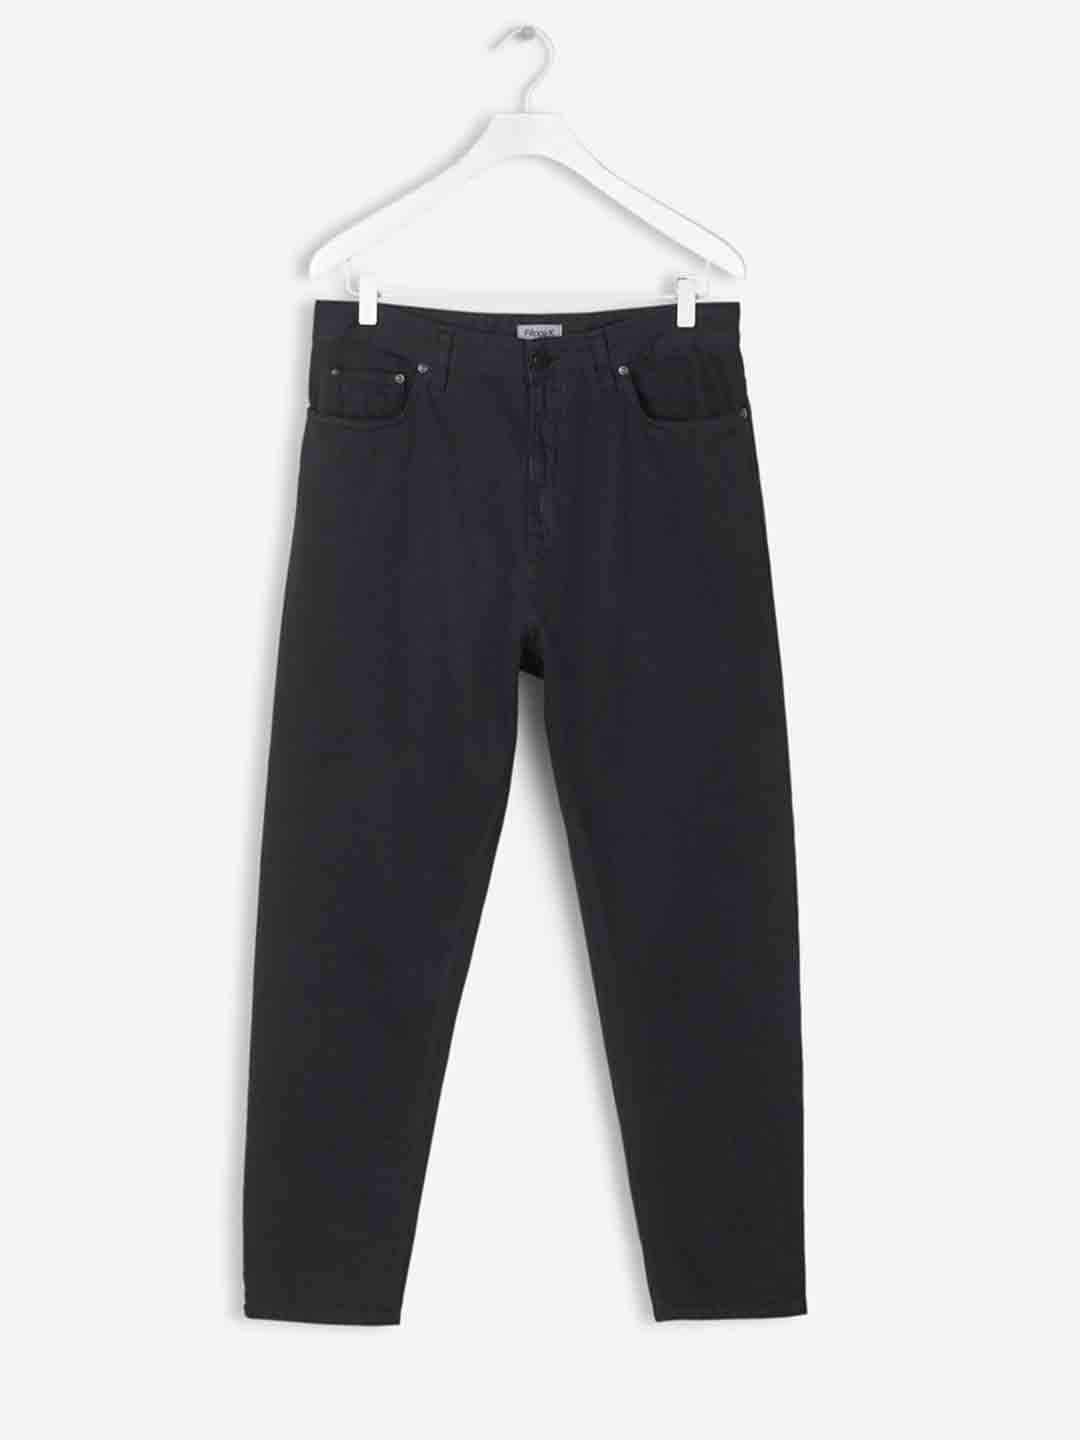 Lawrence Jeans